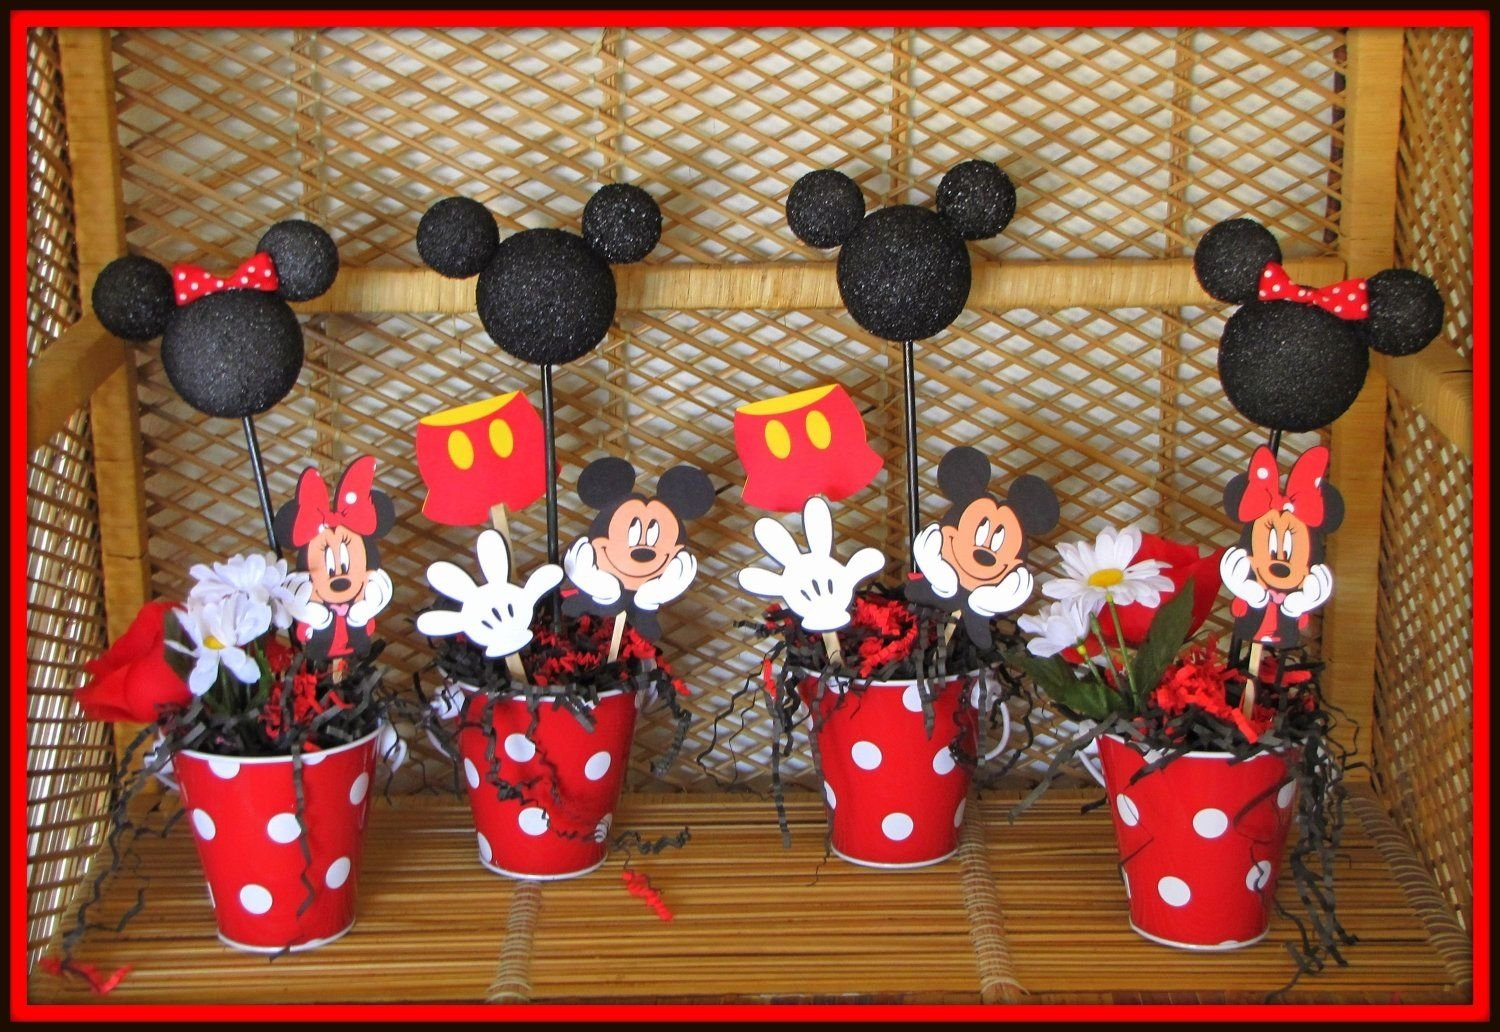 10 Attractive Mickey Mouse Party Favors Ideas minnie and mickey party decorations photos mickey mouse birthday 4 2020